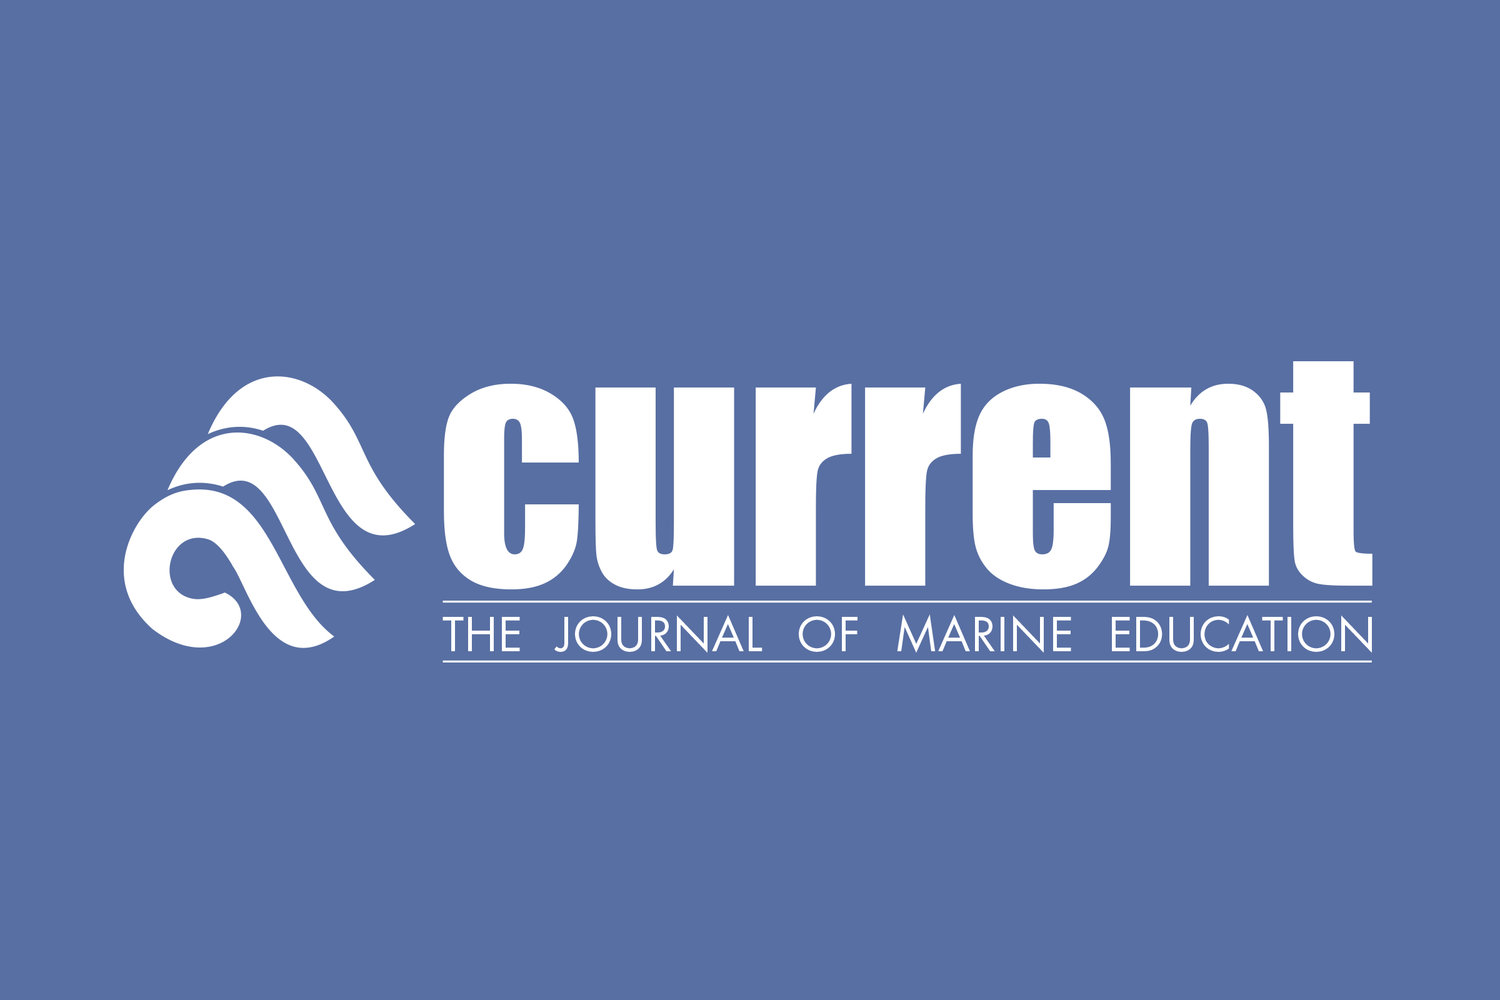 Current: The Journal of Marine Education is seeking a new